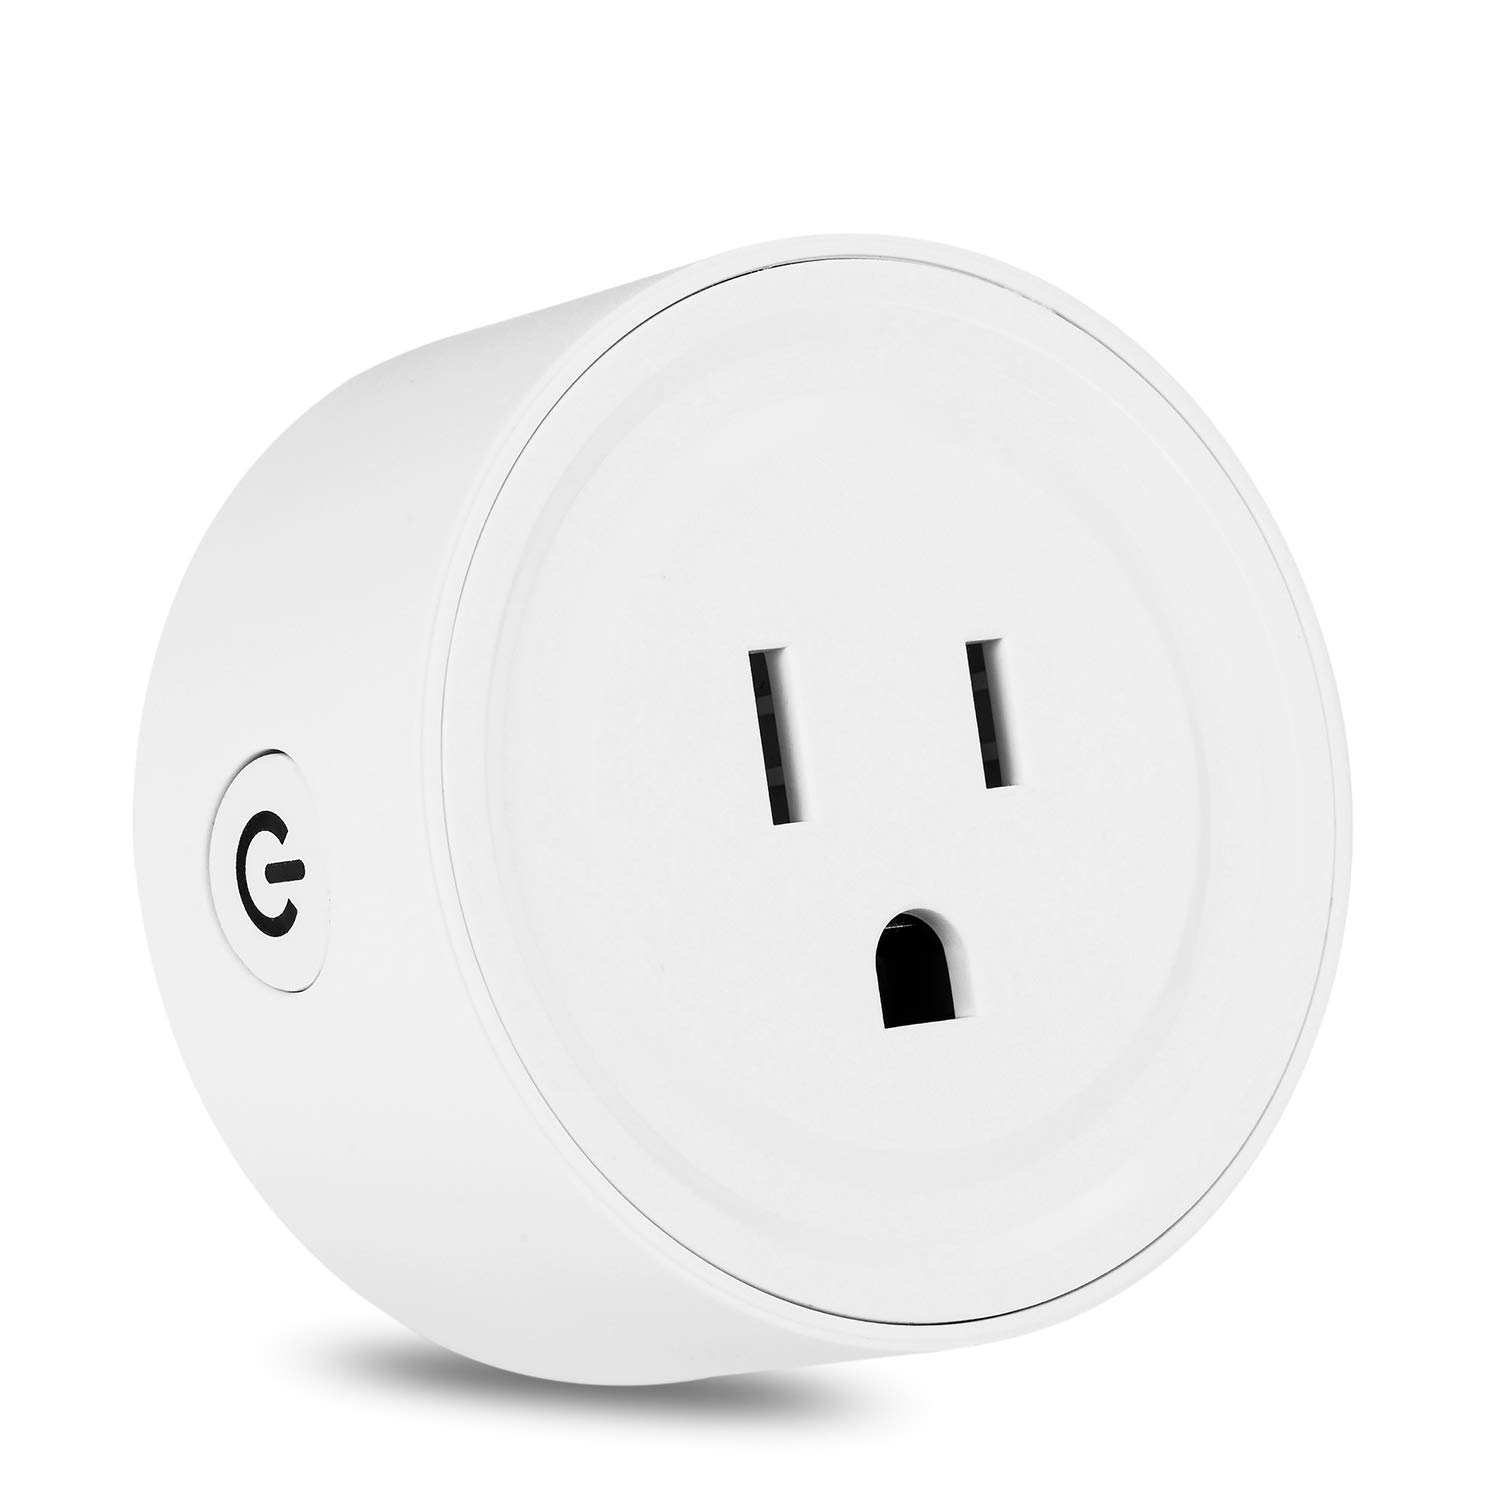 Wifi Smart Plug Mini Socket Outlet Power Switch Works With Amazon Alex Google Home Remote Control By App No Hub Required Time Fuction